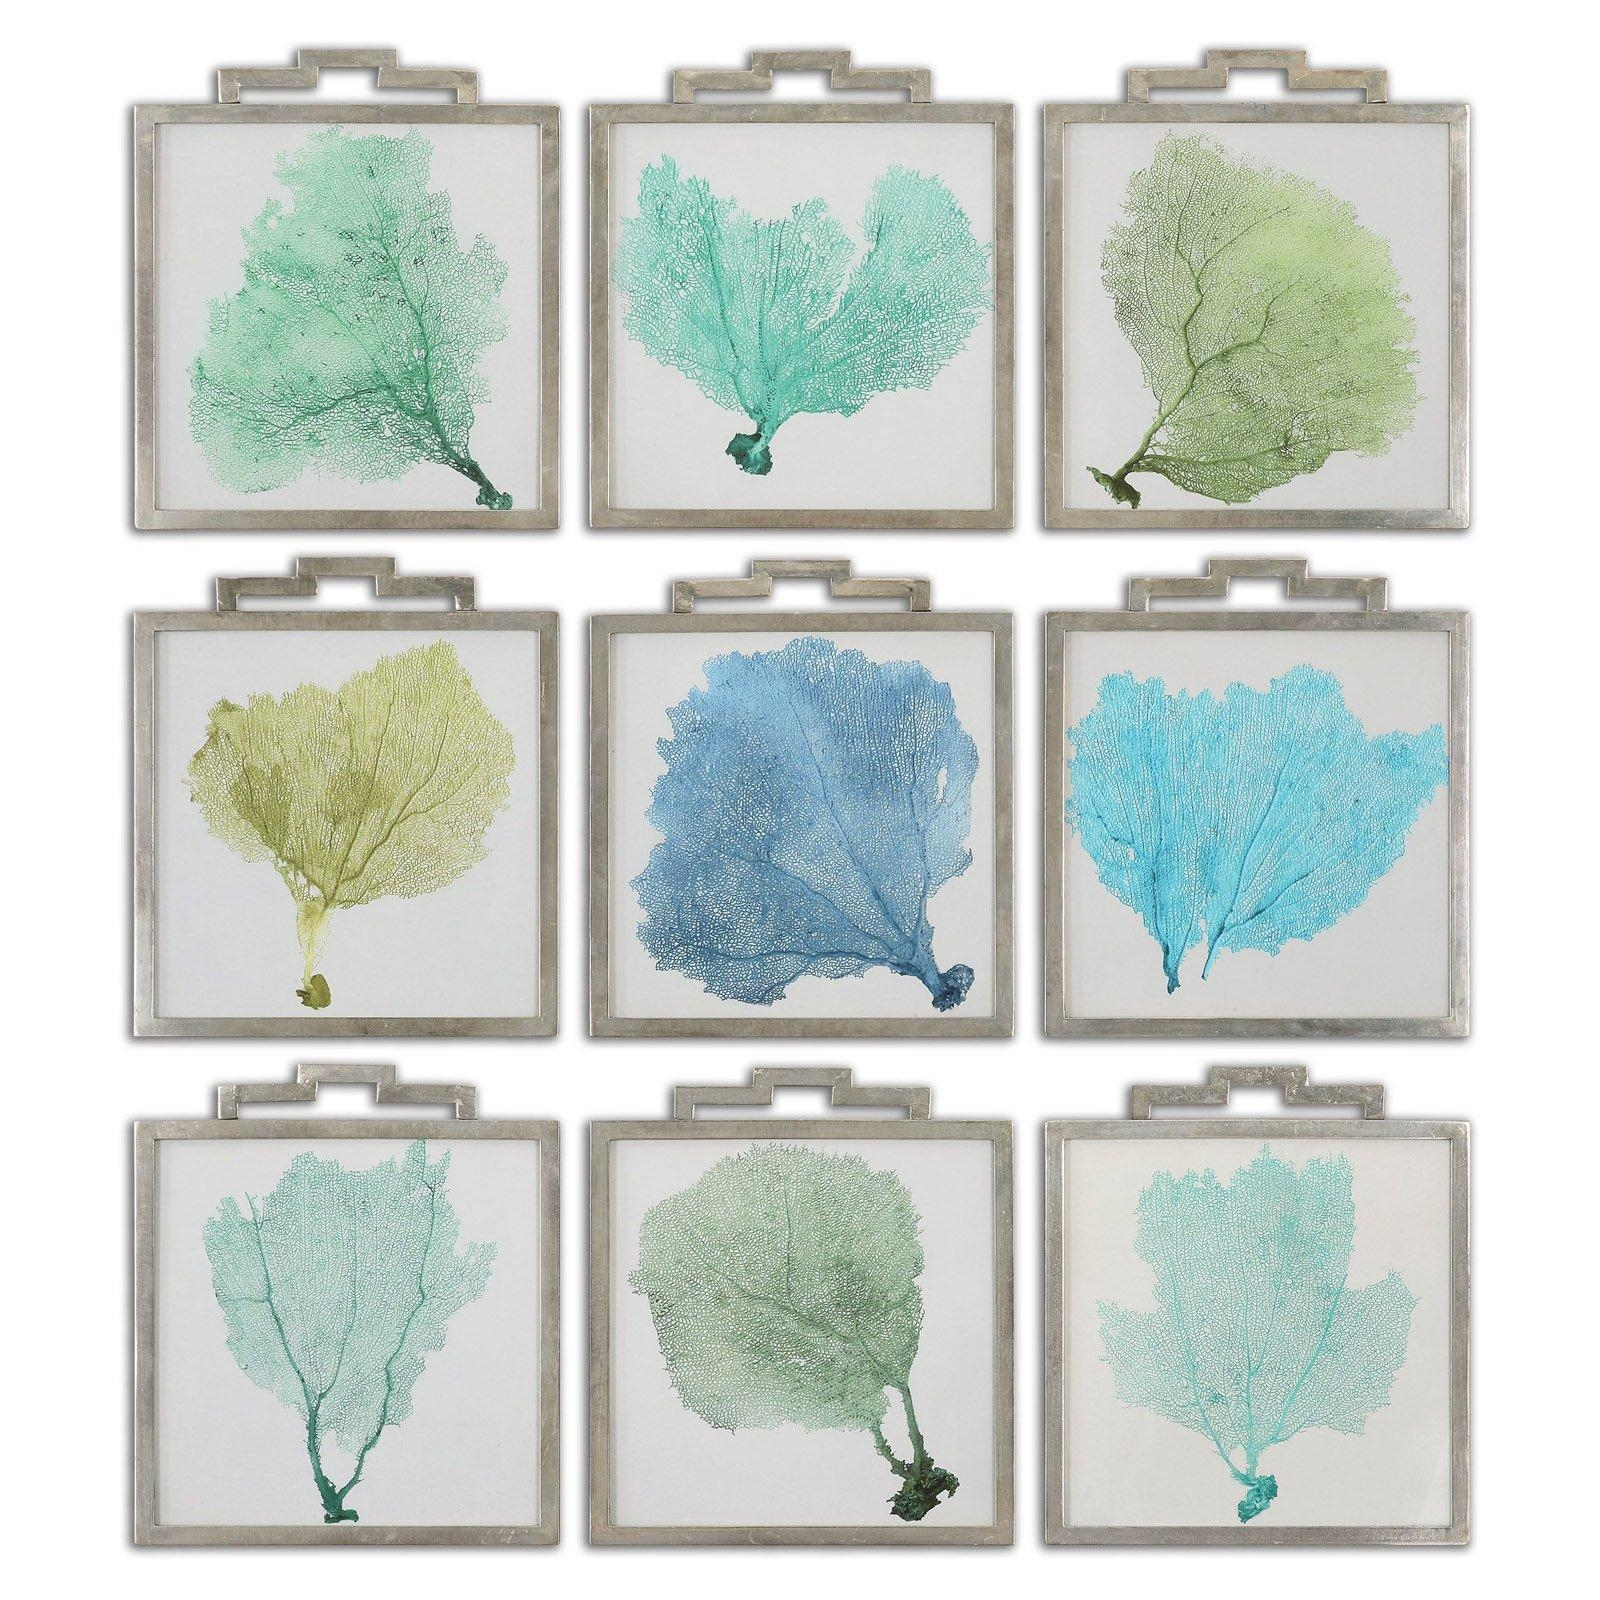 Uttermost Sea Fans Framed Art - Set Of 9 - 17W X 19H In. Ea intended for Sea Fan Wall Art